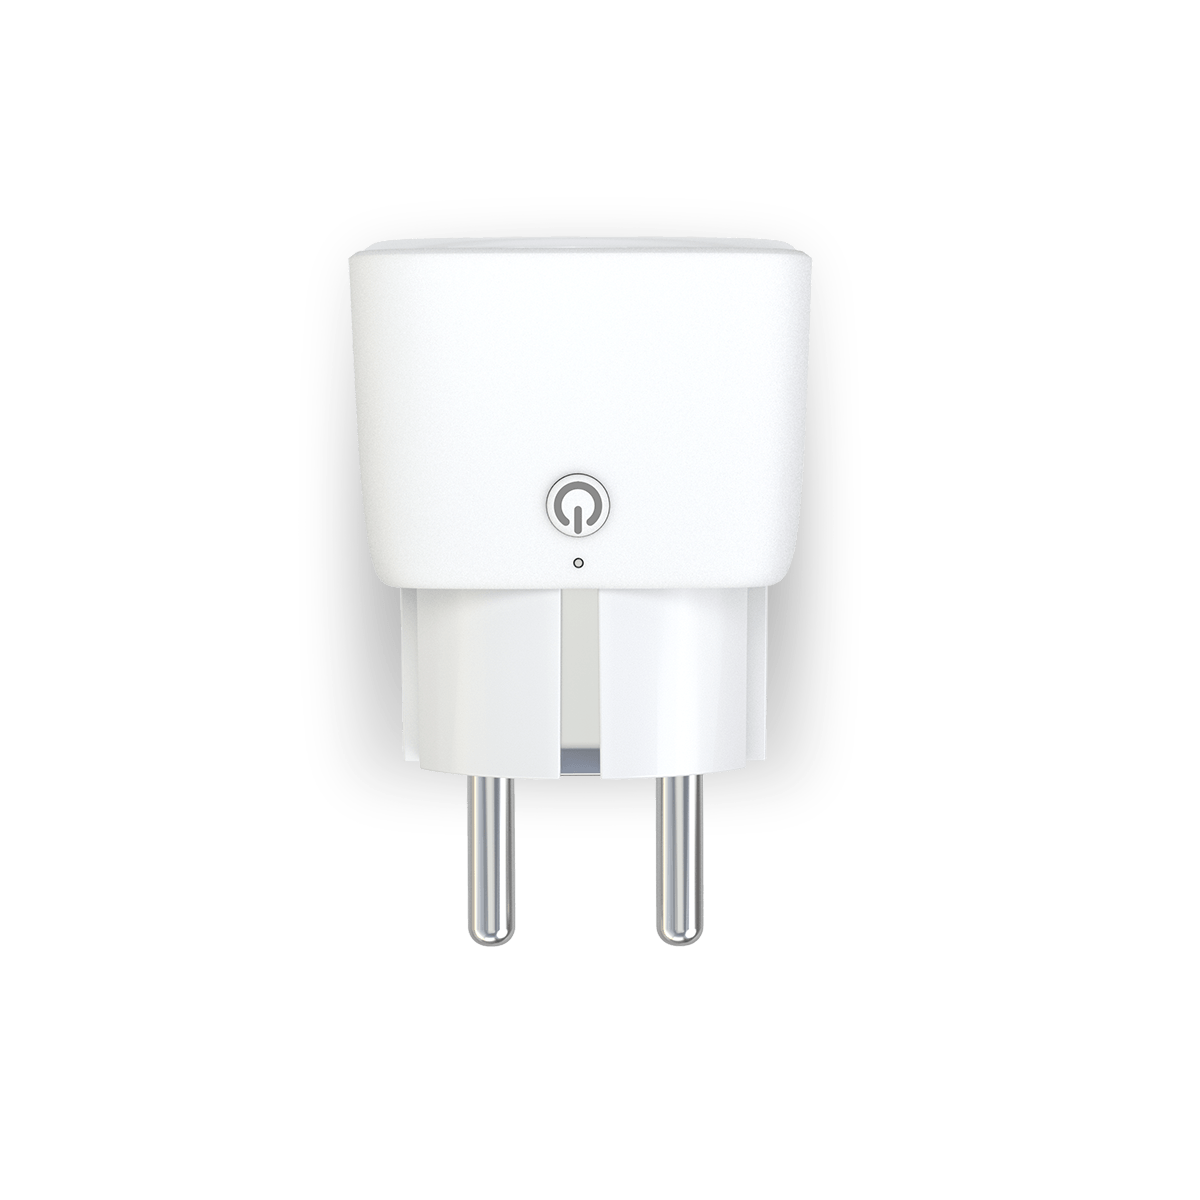 Le Smart Plug innr sono compatibili con DiCE Smart